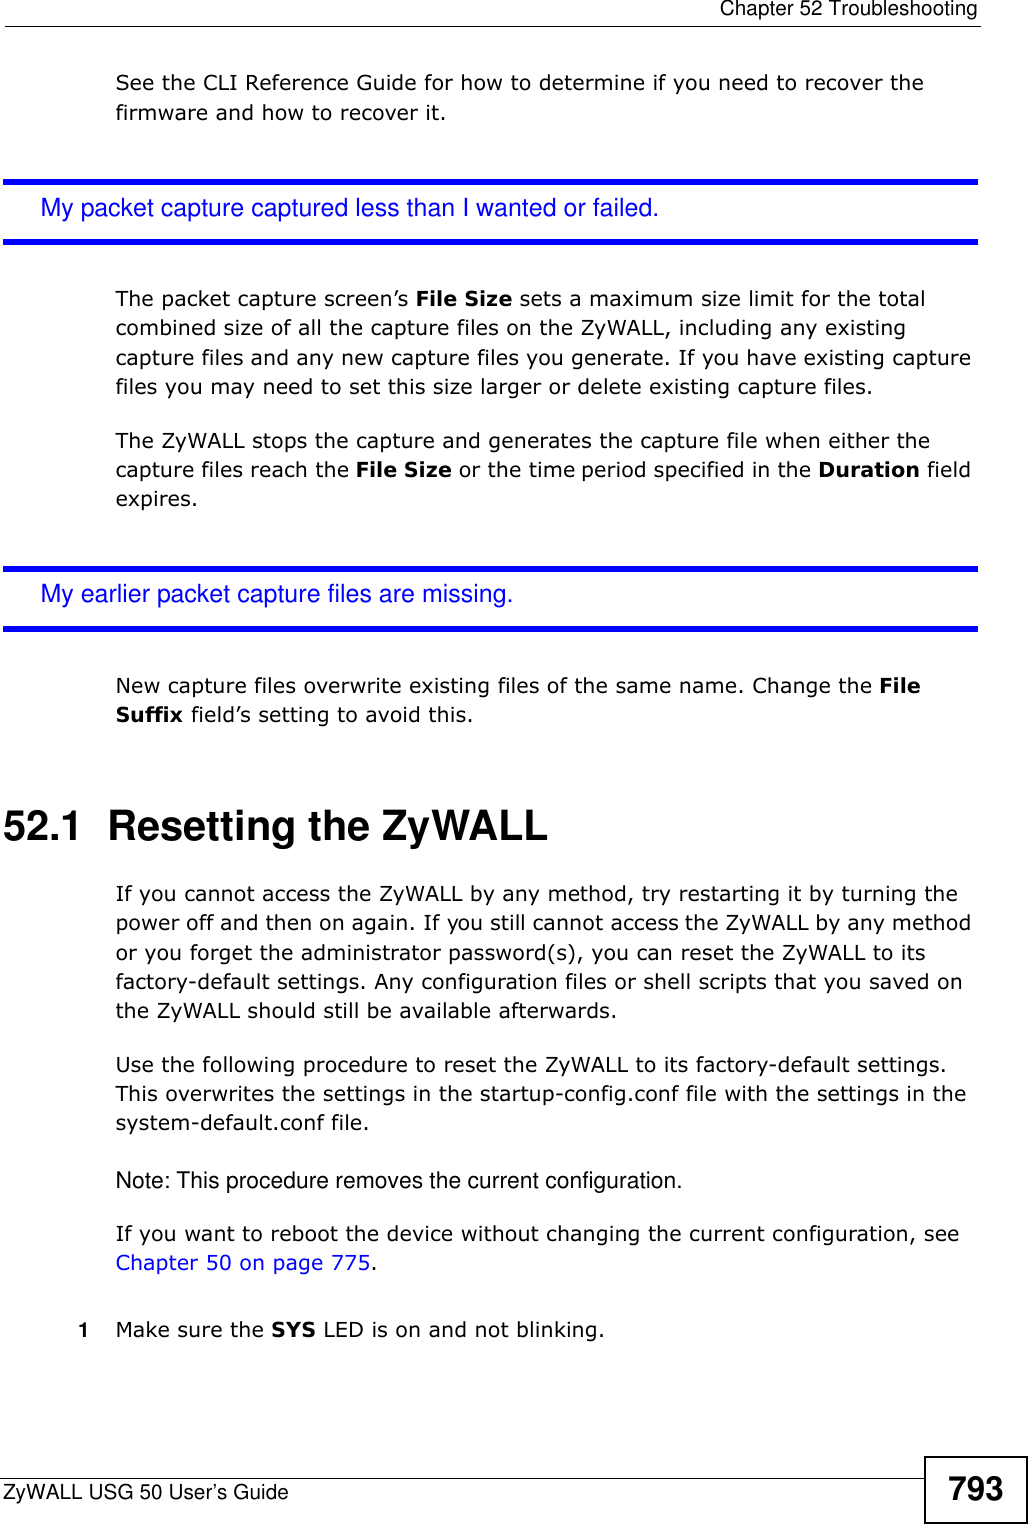 Zyxel Zywall Usg 50 Users Manual User's Guide